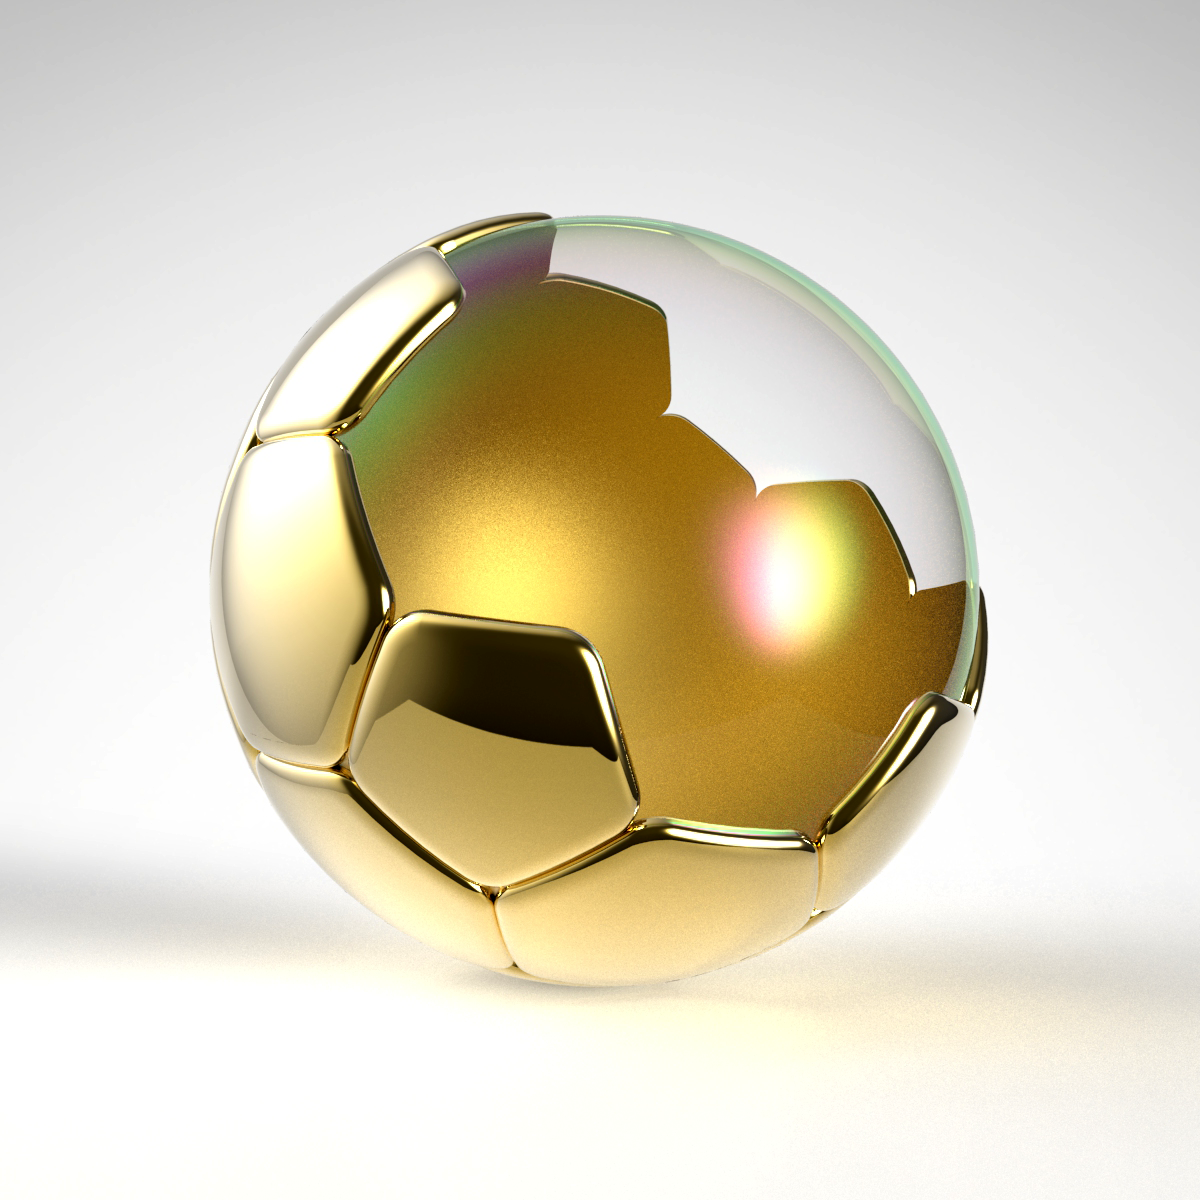 The Soccer Bubble By Zpaolo On Deviantart Soccer Soap Bubbles Bubbles